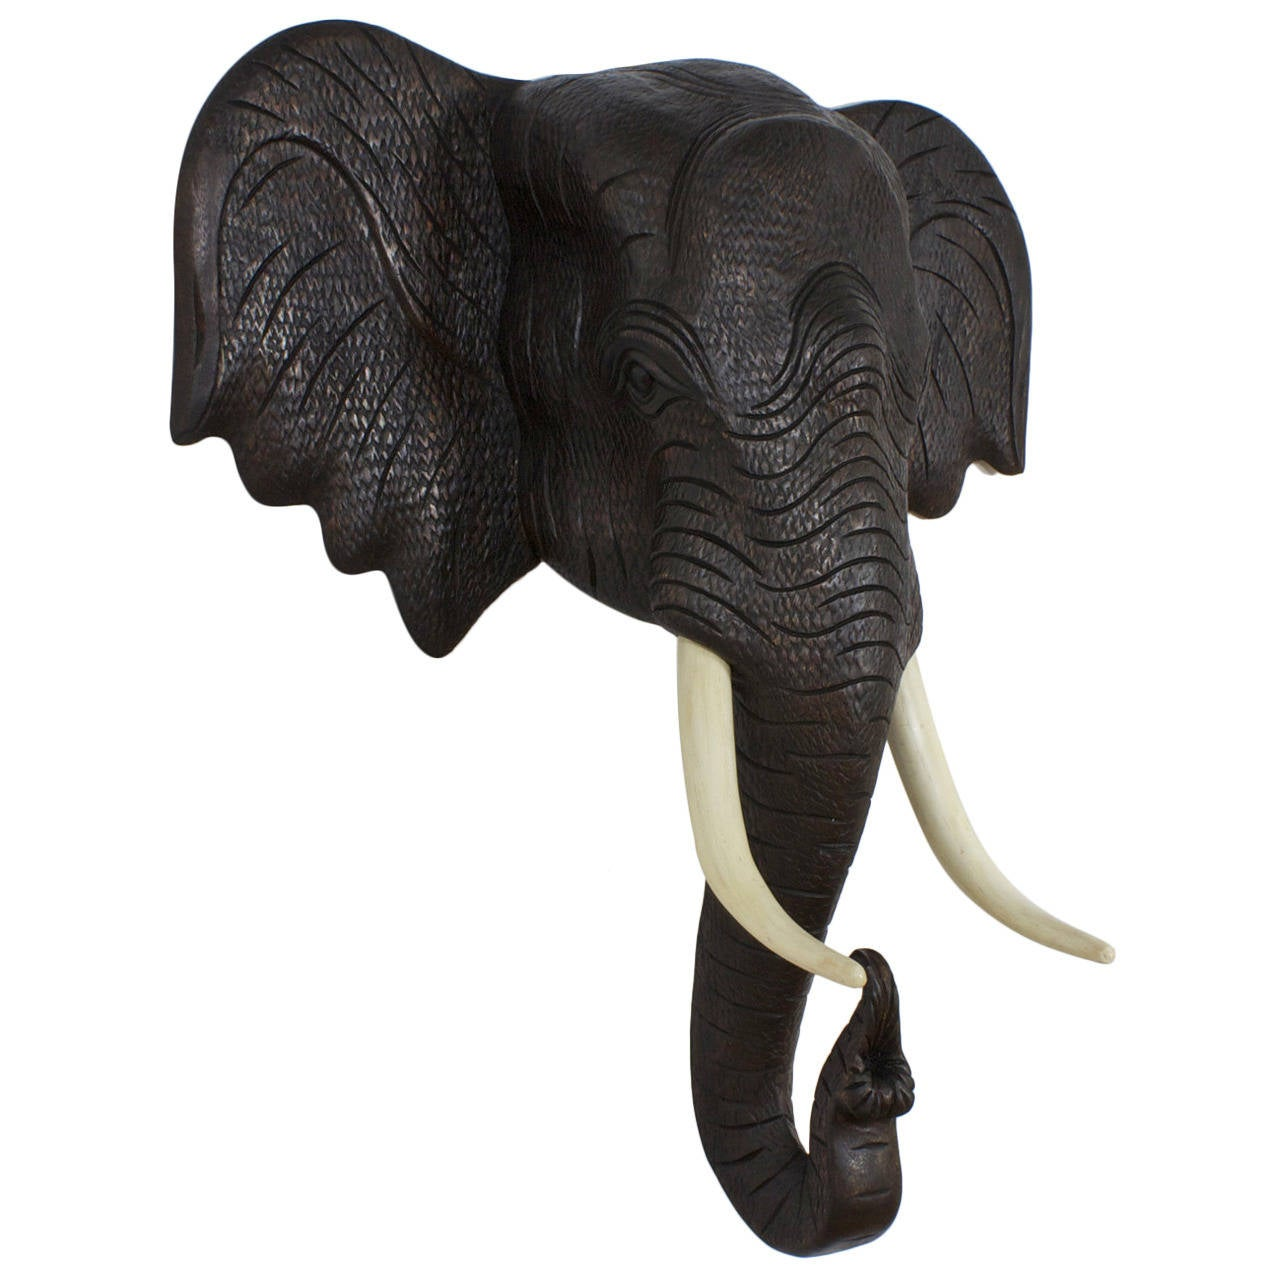 Carved Wood Elephant Head Sculpture